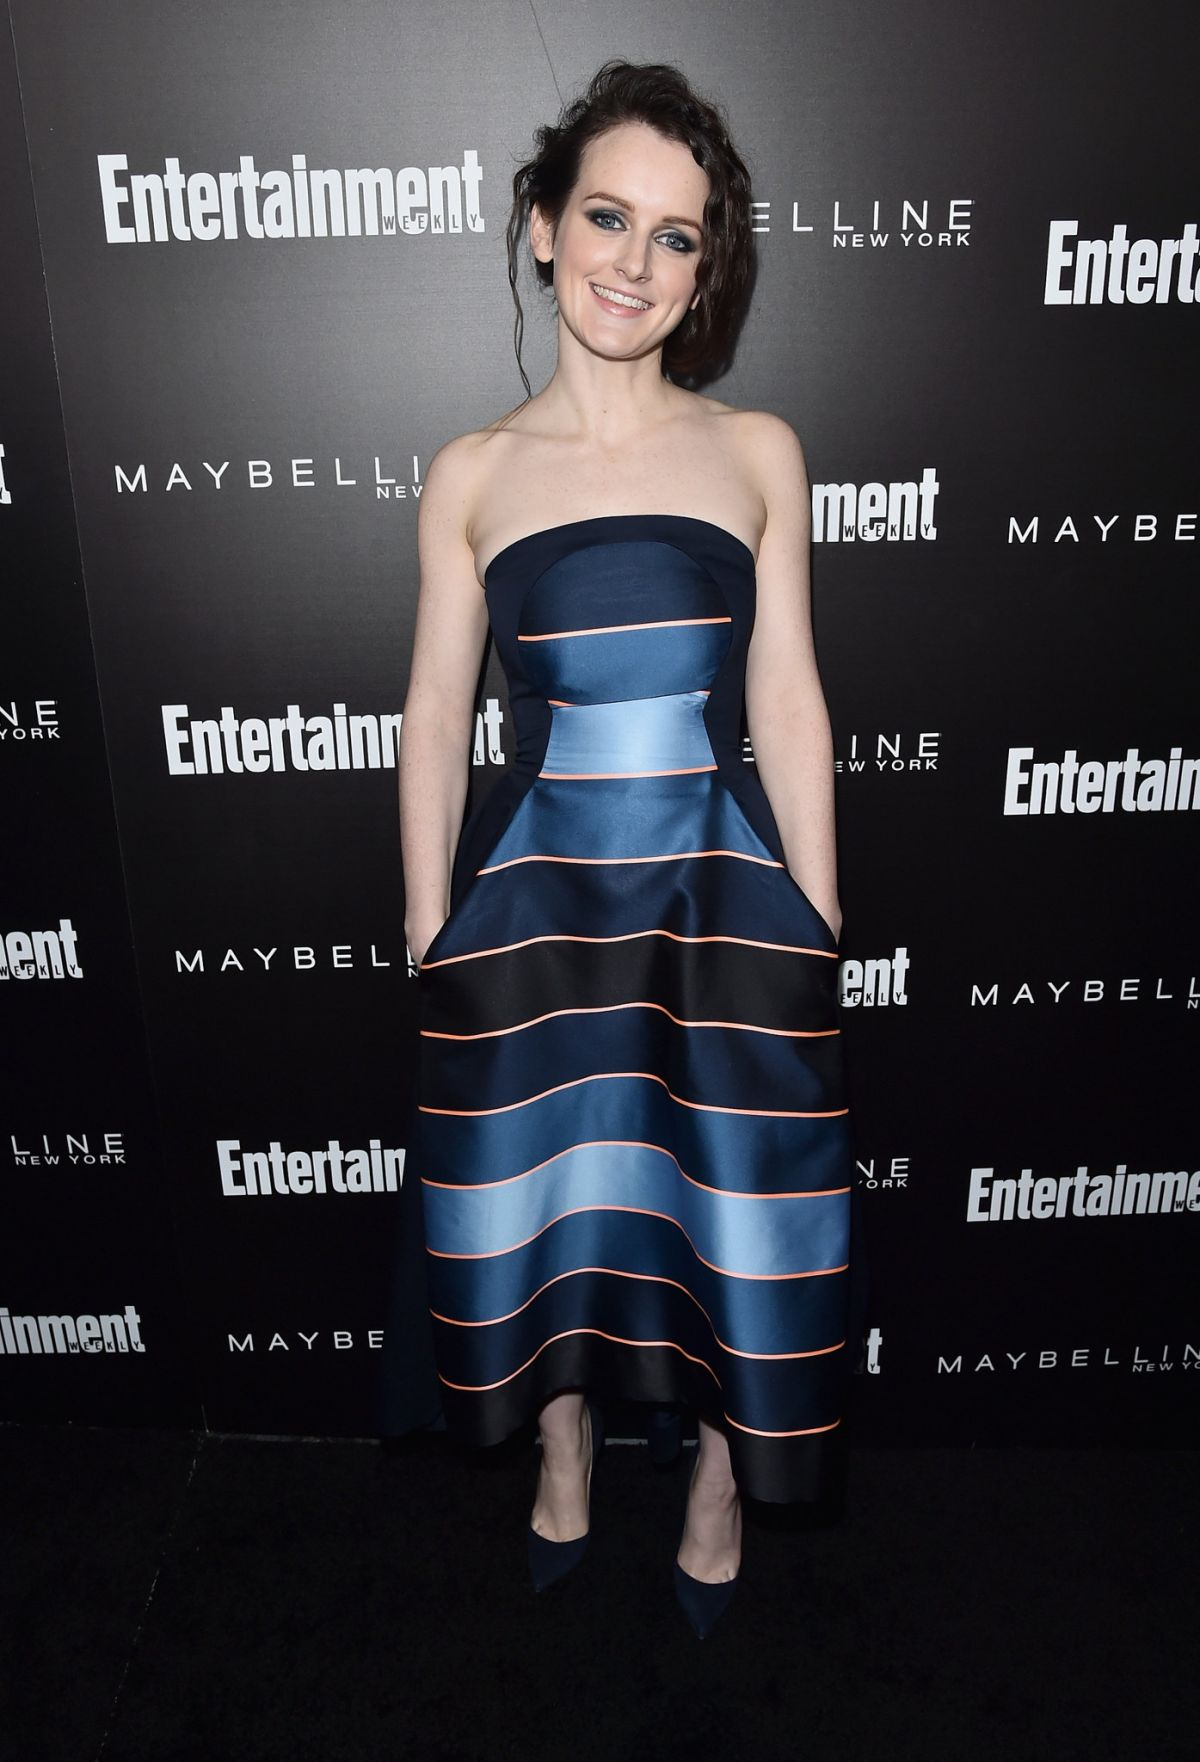 SOPHIE MCSHERA at EW Celebration Honoring the Screen Actors Guild Awards Nominees in Los Angeles 01/29/2016